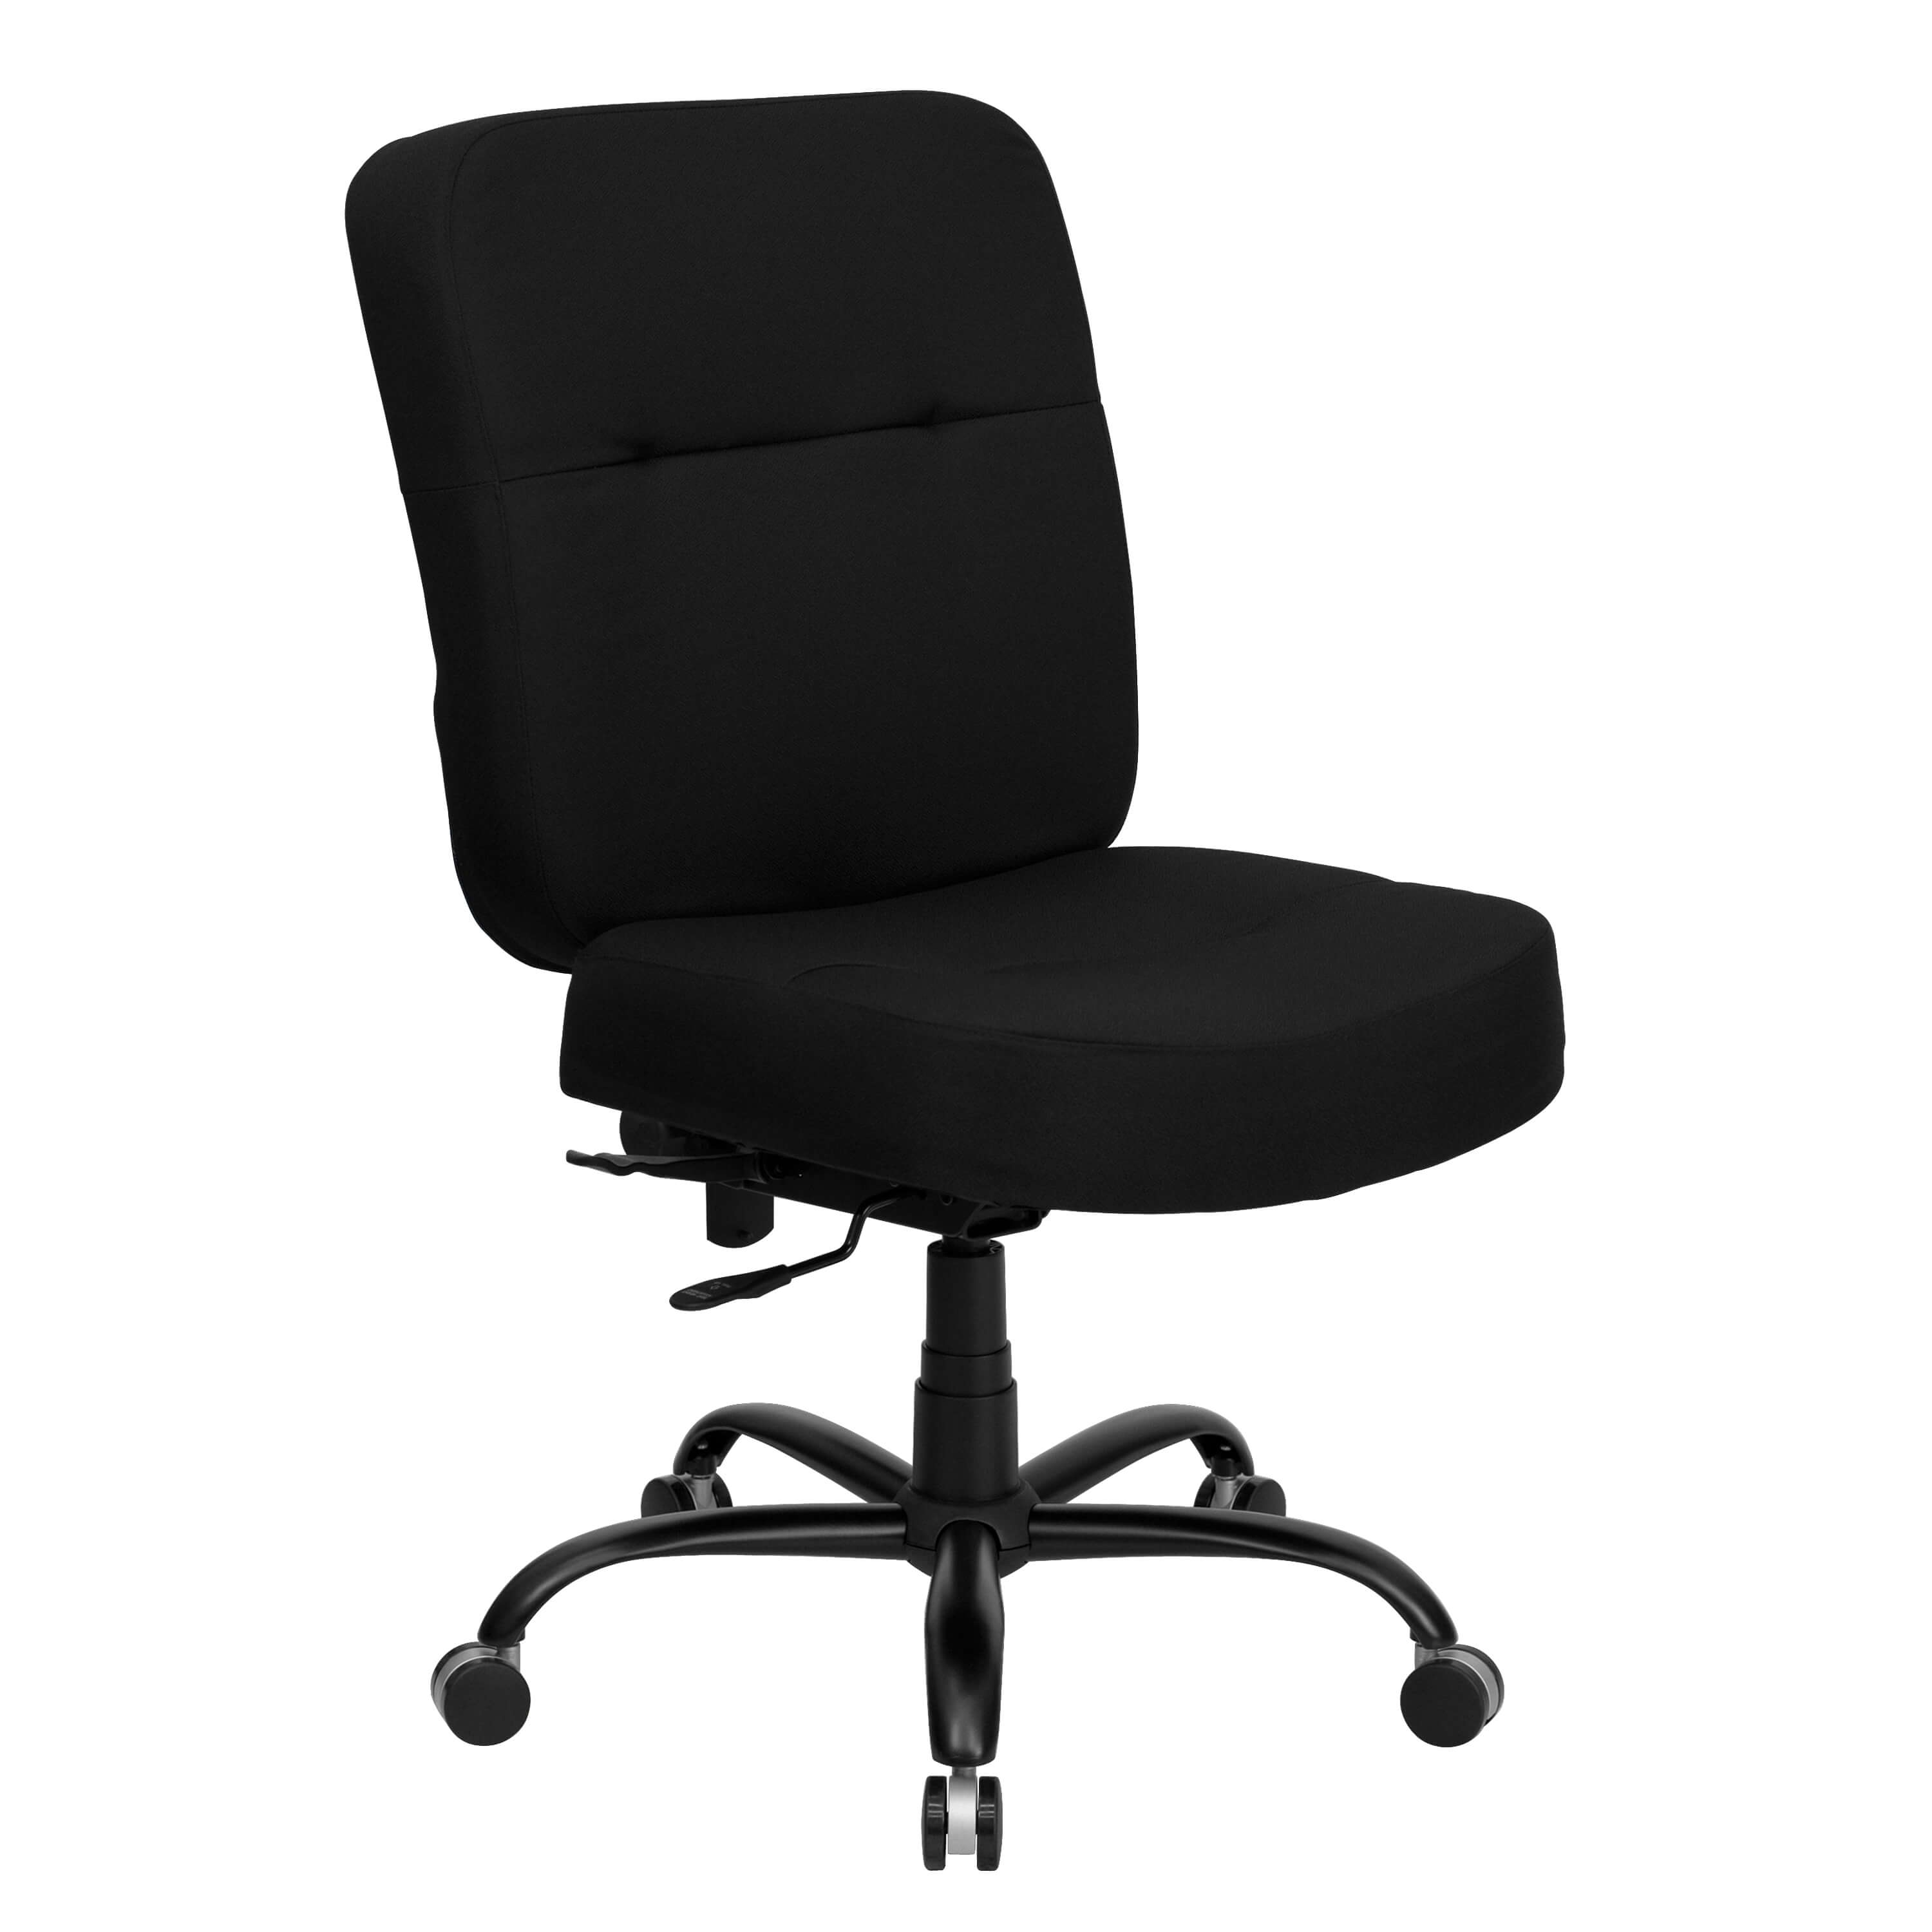 big-and-tall-office-chairs-high-weight-capacity-office-chair.jpg